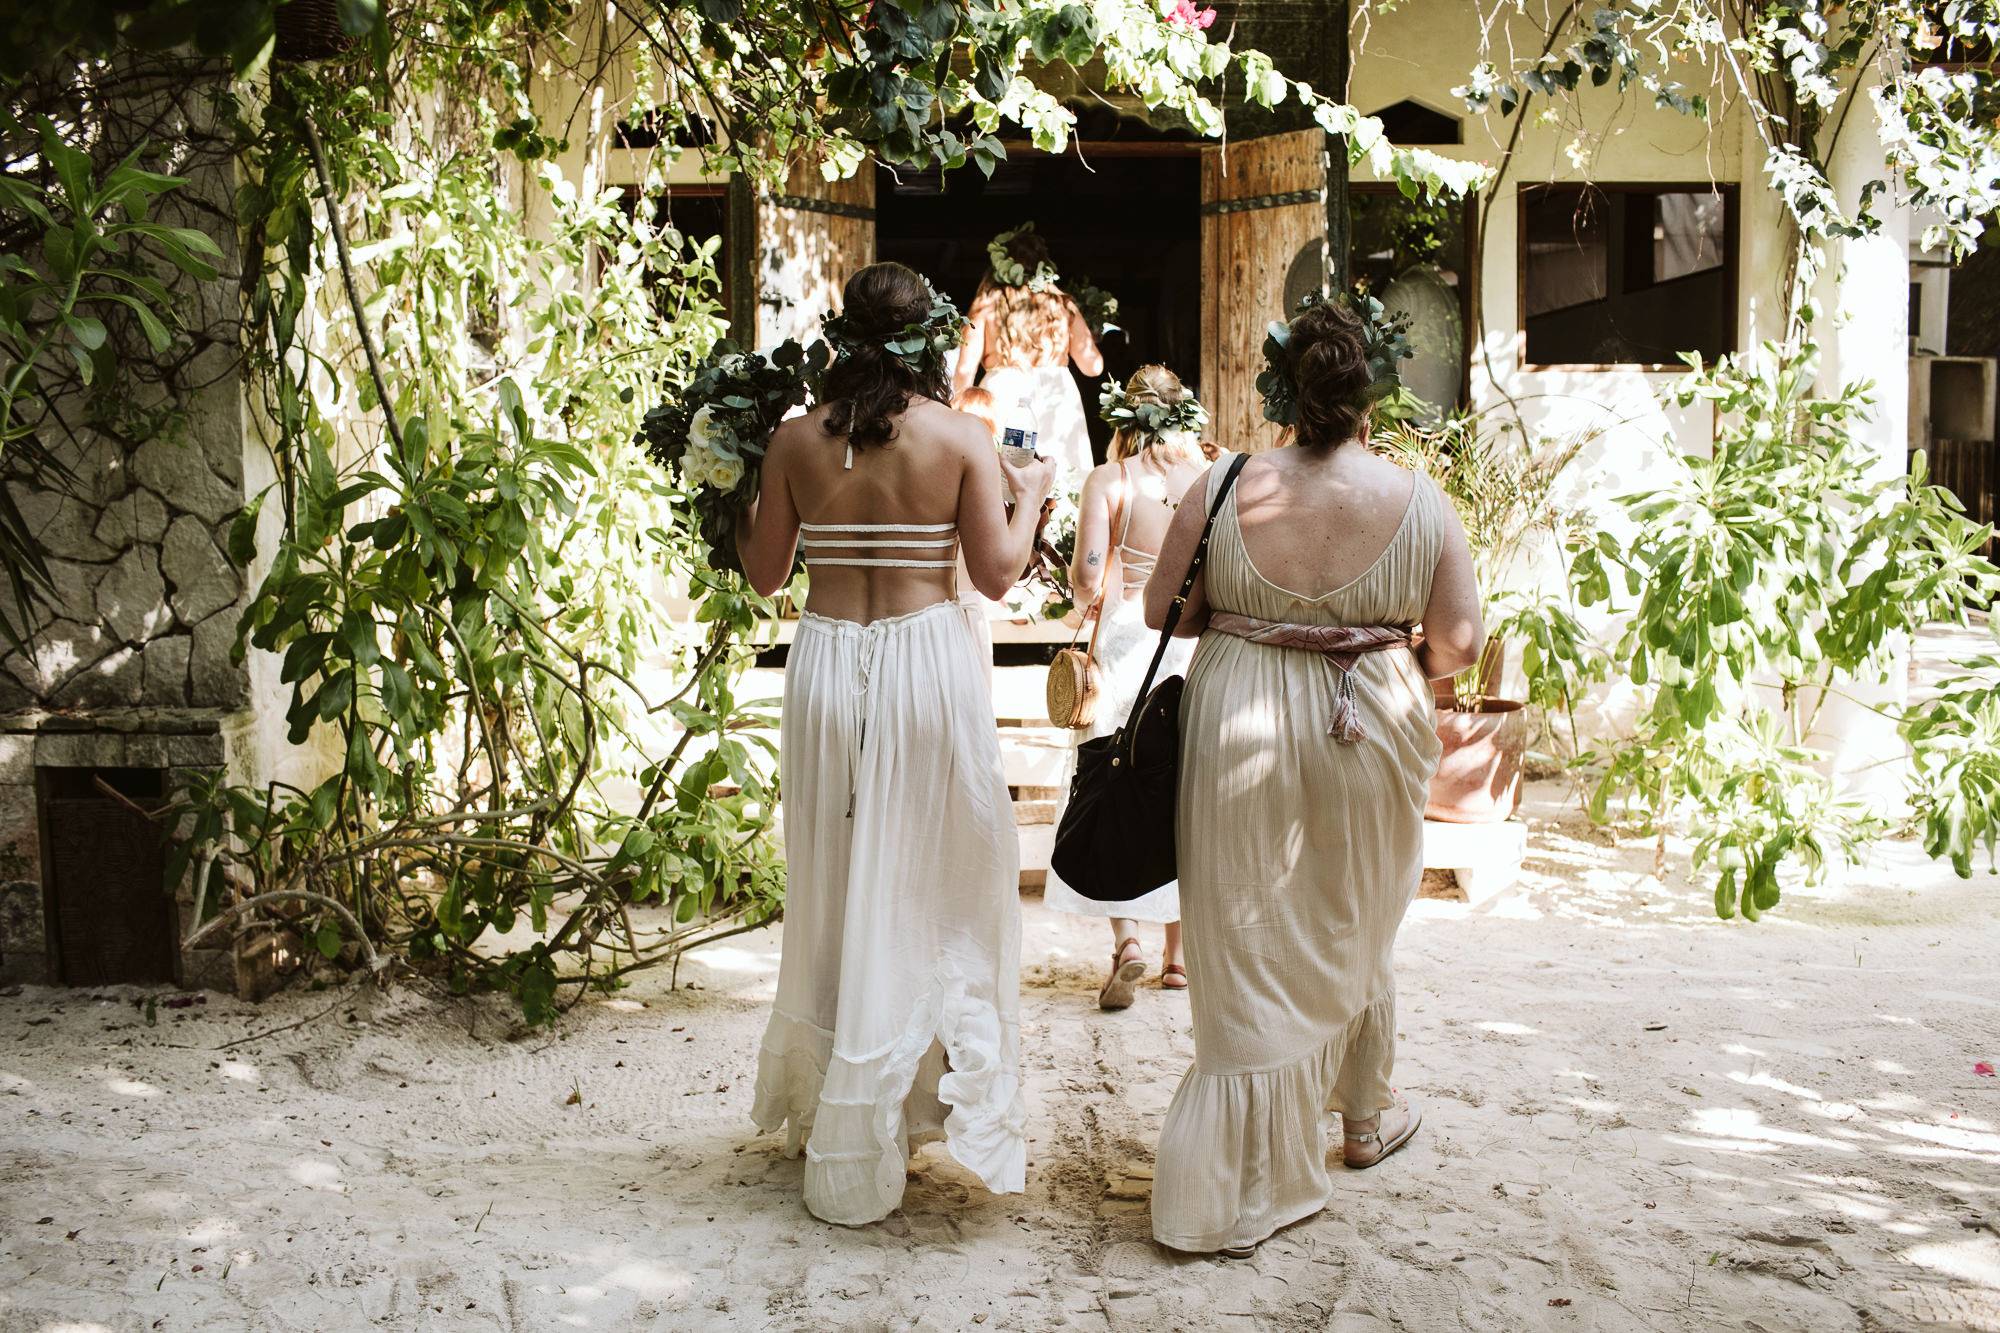 cancun_beach_wedding_casa_malca-139.jpg